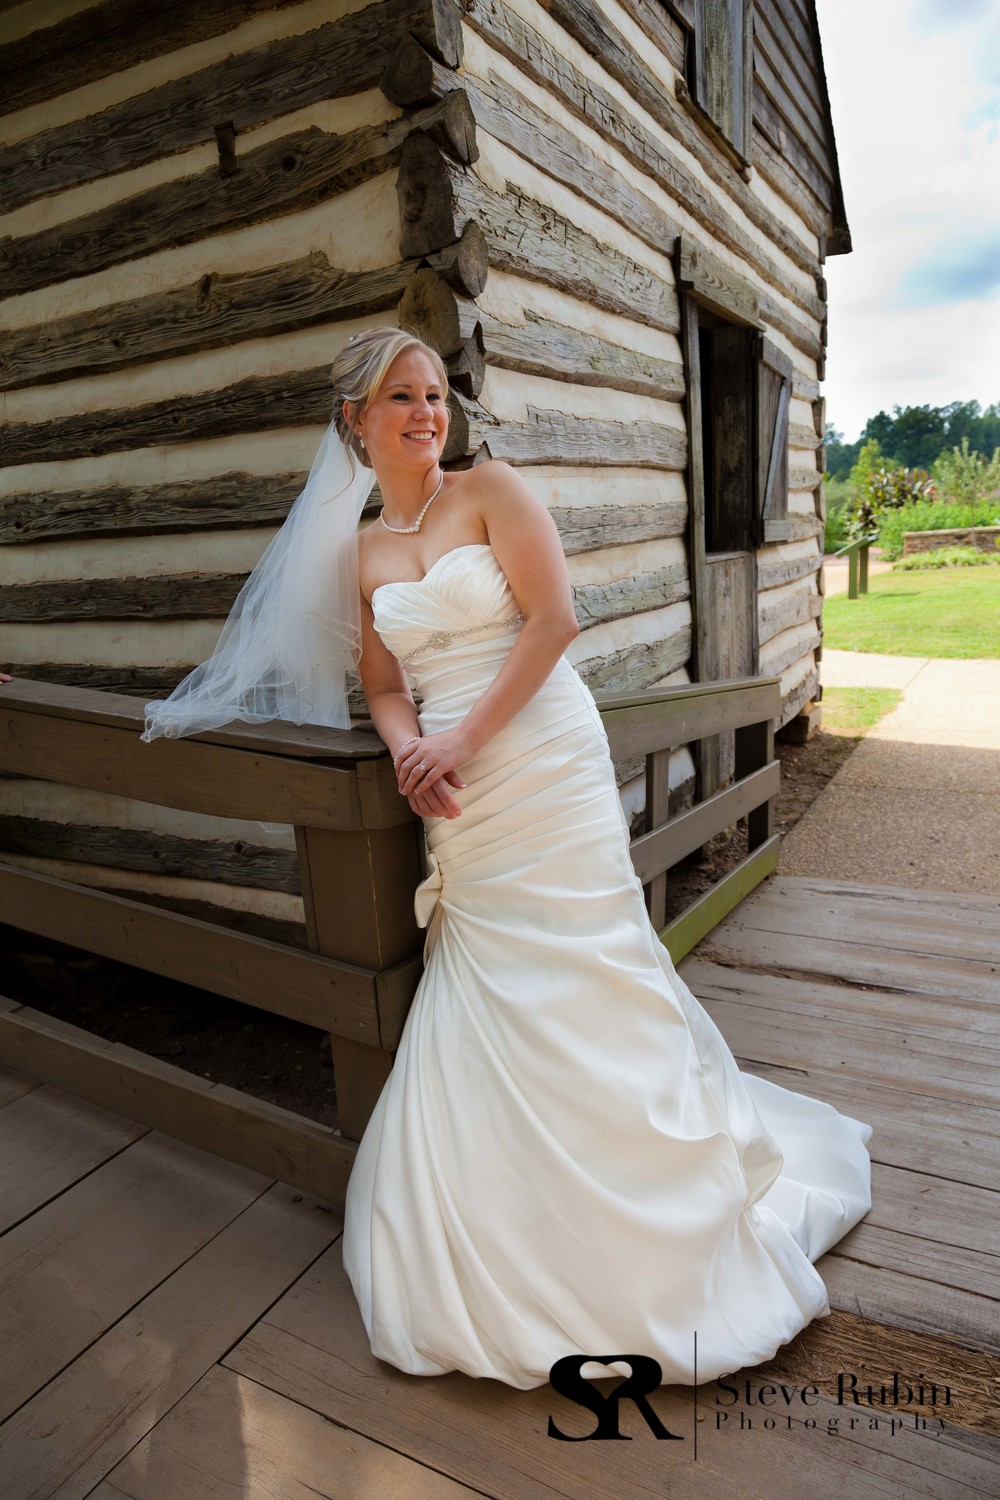 Bride outdoor Portrait with Barn at Joyner Park